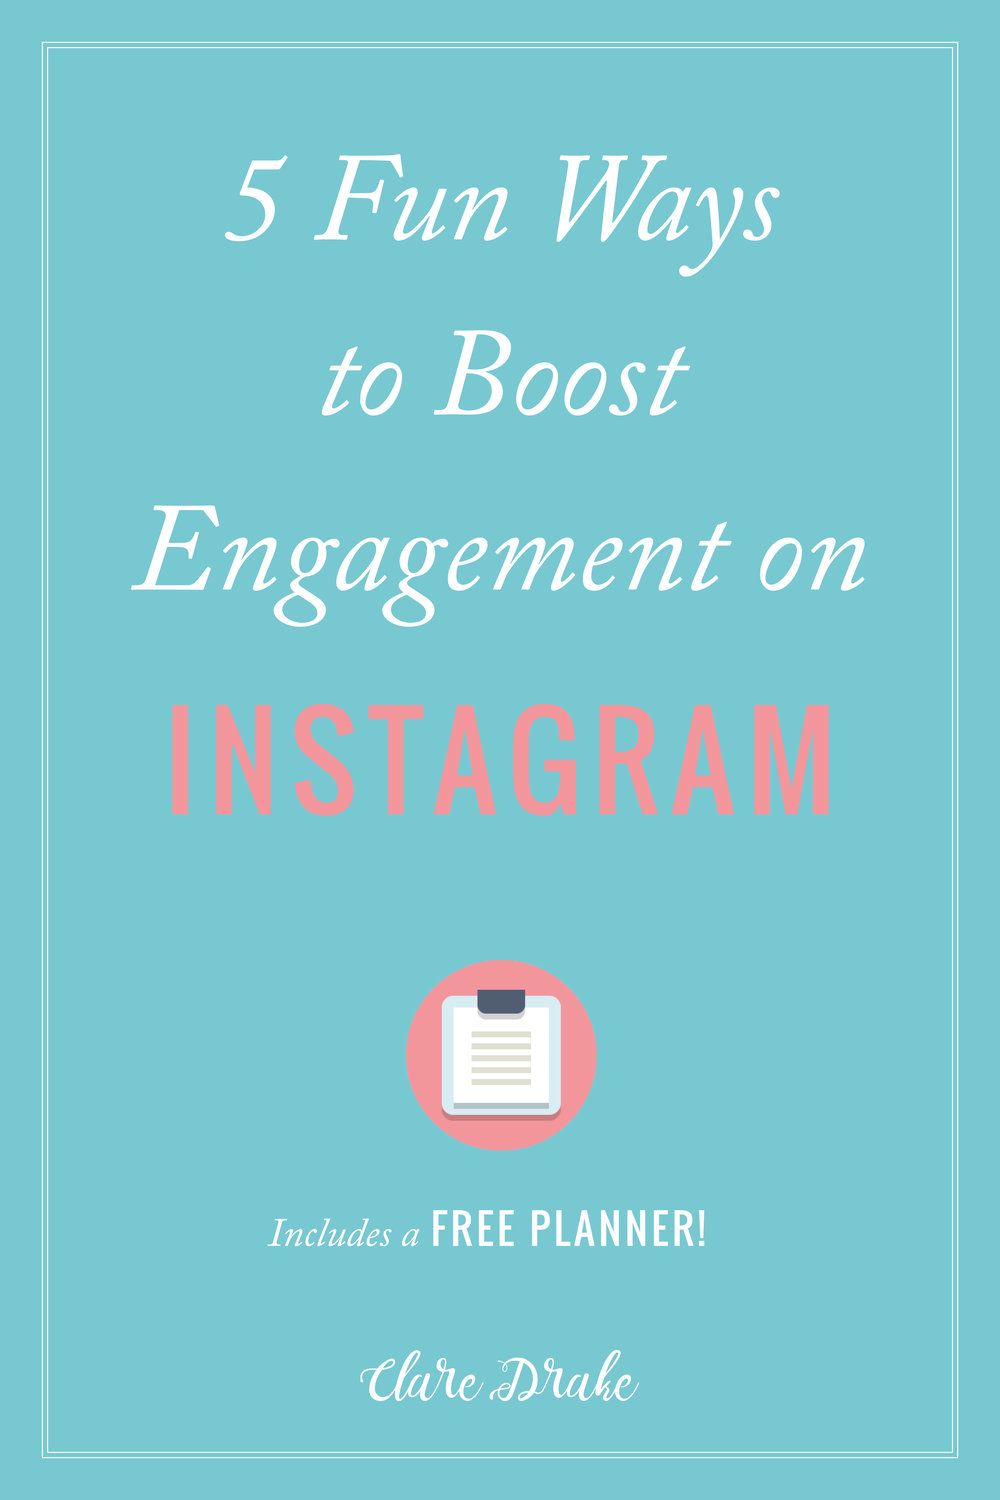 5 Fun Ways to Spark Interest & Boost Engagement on Instagram